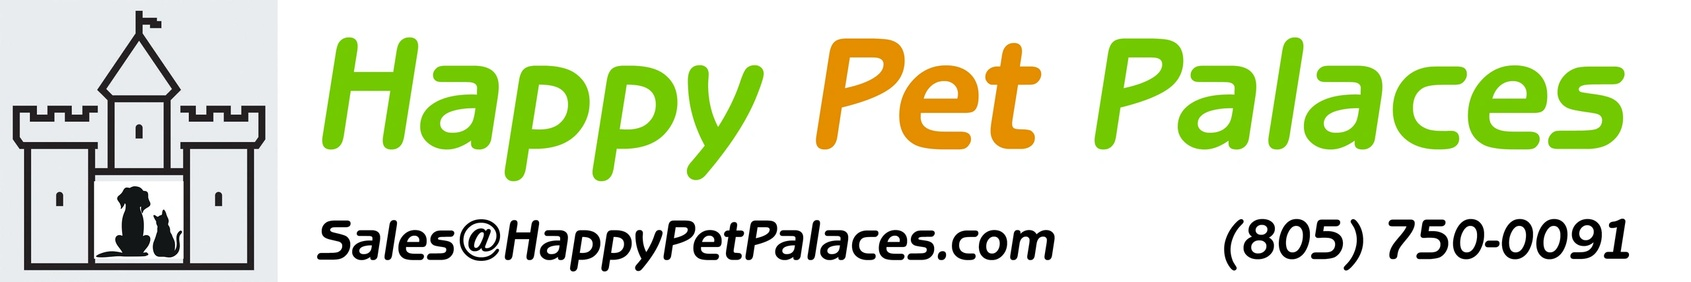 Happy Pet Palaces